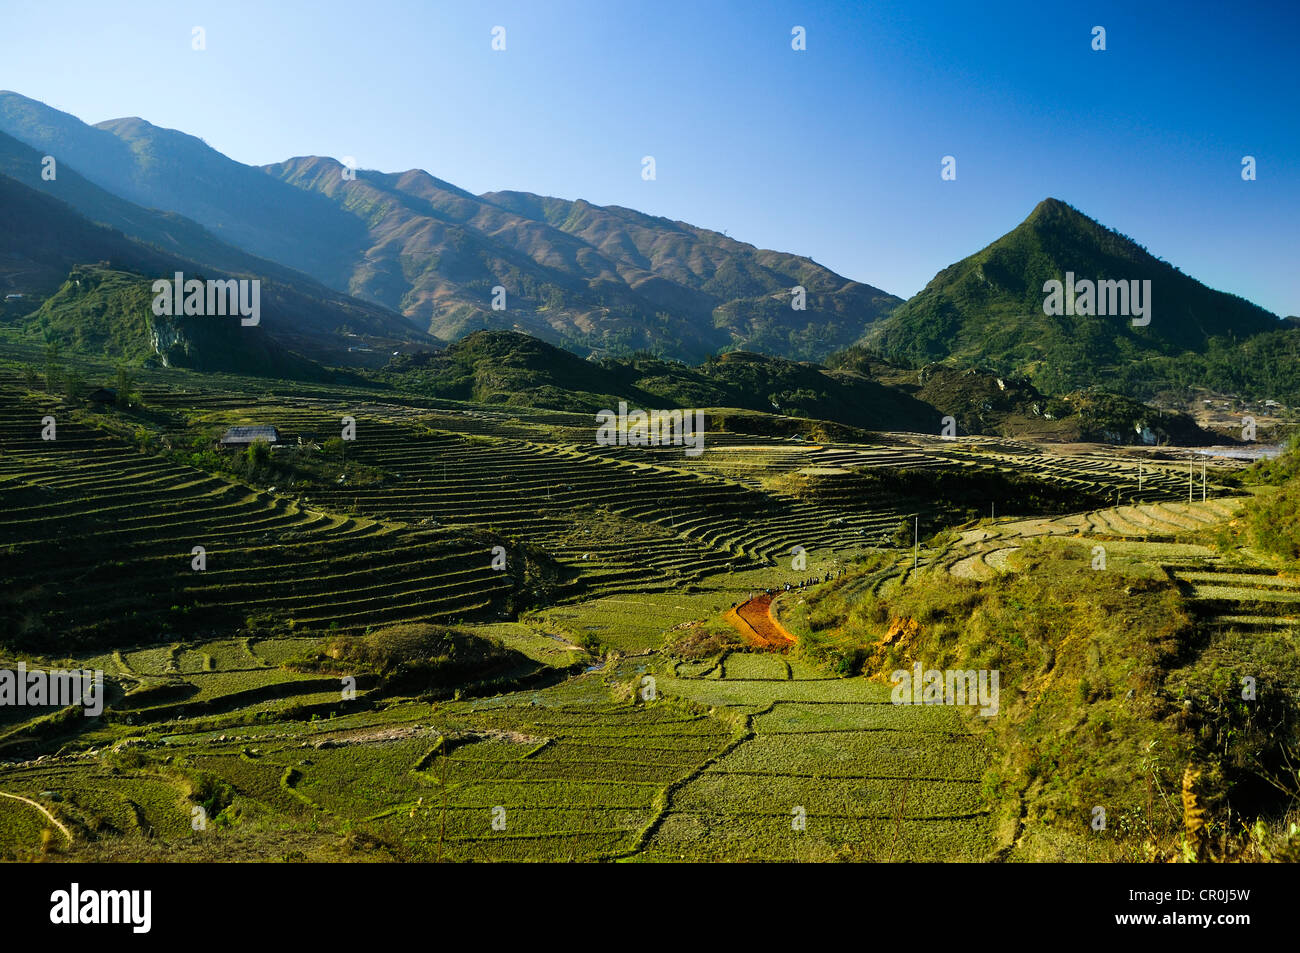 New terrace, rice terraces, rice paddies in Sapa or Sa Pa, Lao Cai province, northern Vietnam, Vietnam, Southeast - Stock Image